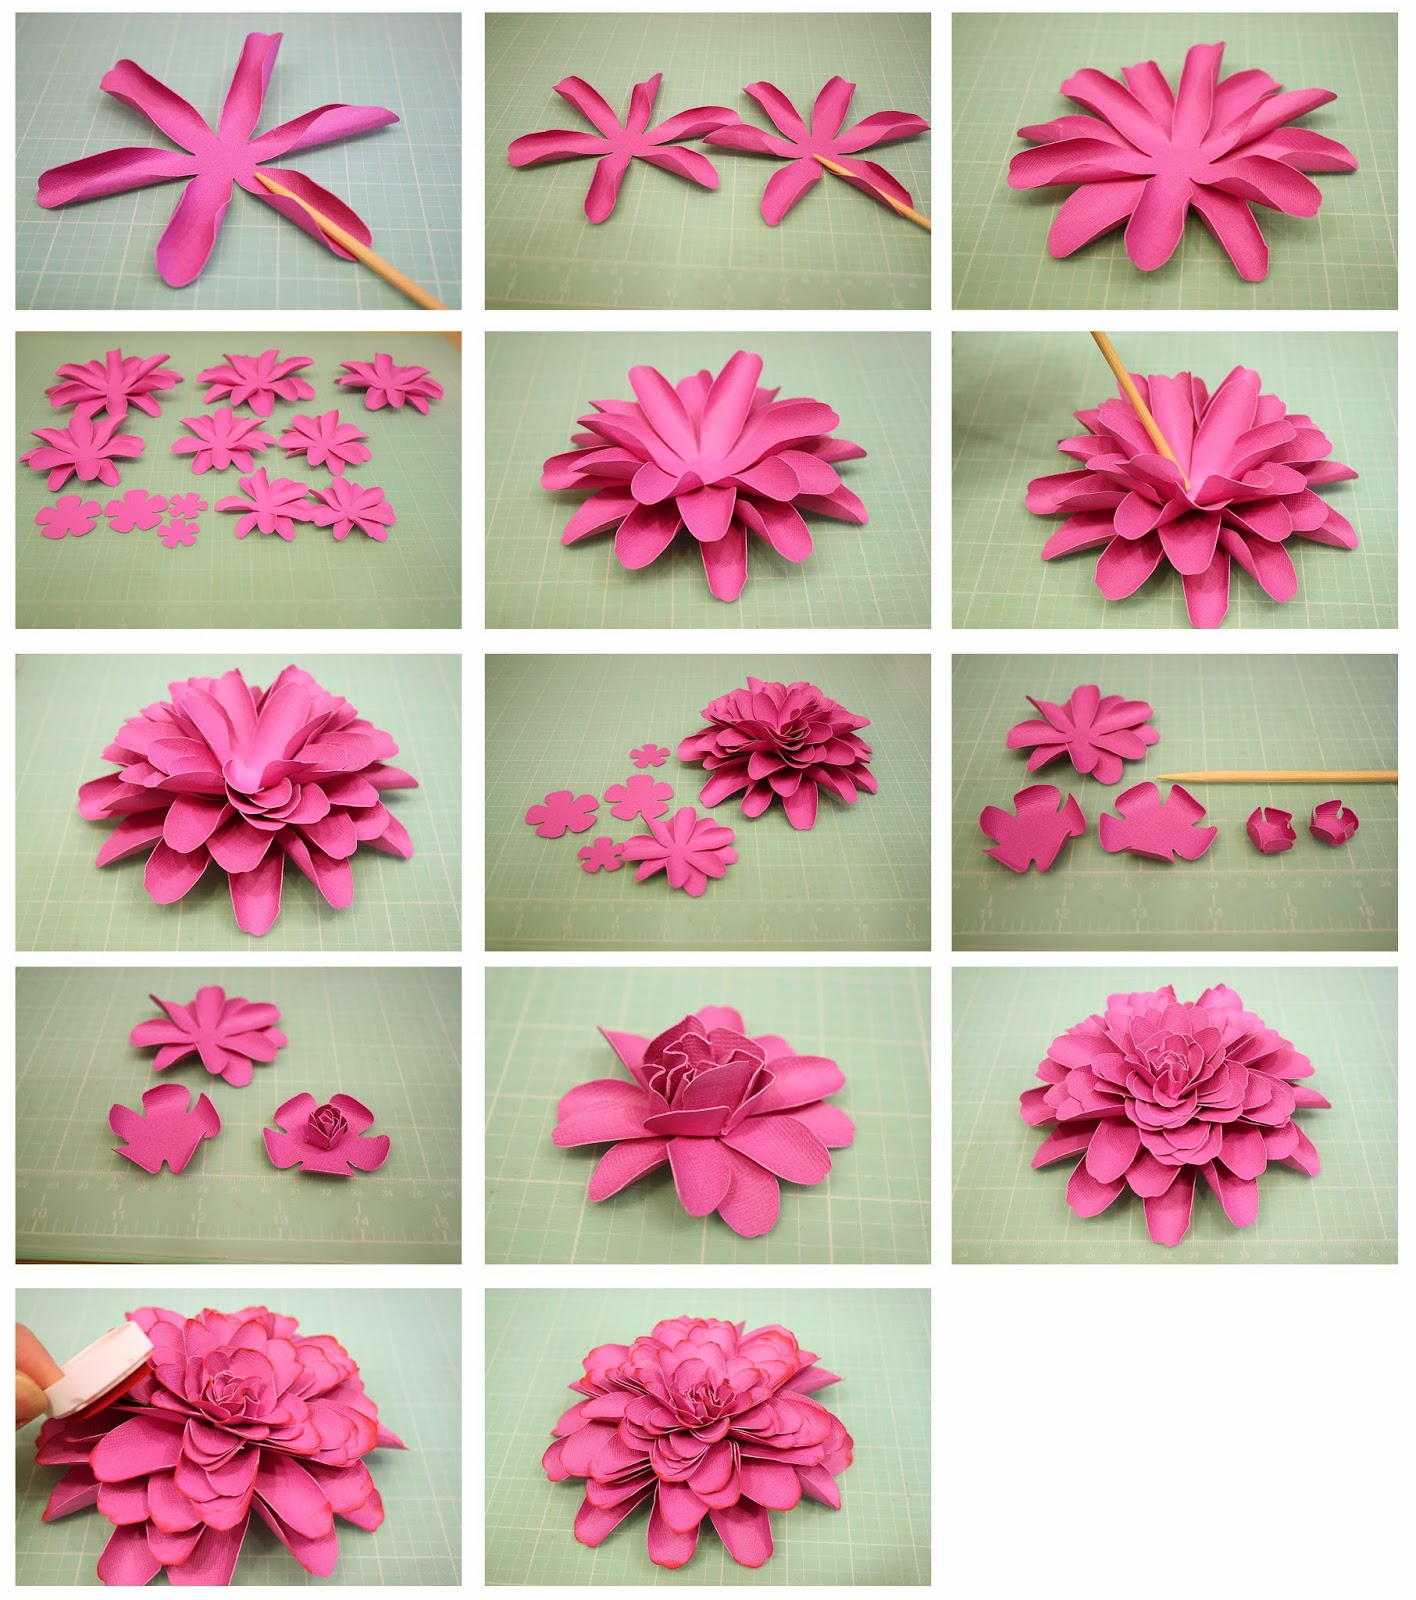 3d Paper Flowers Template. go back gt gallery for gt. bits of more. best photos of large paper flower template rose paper flower